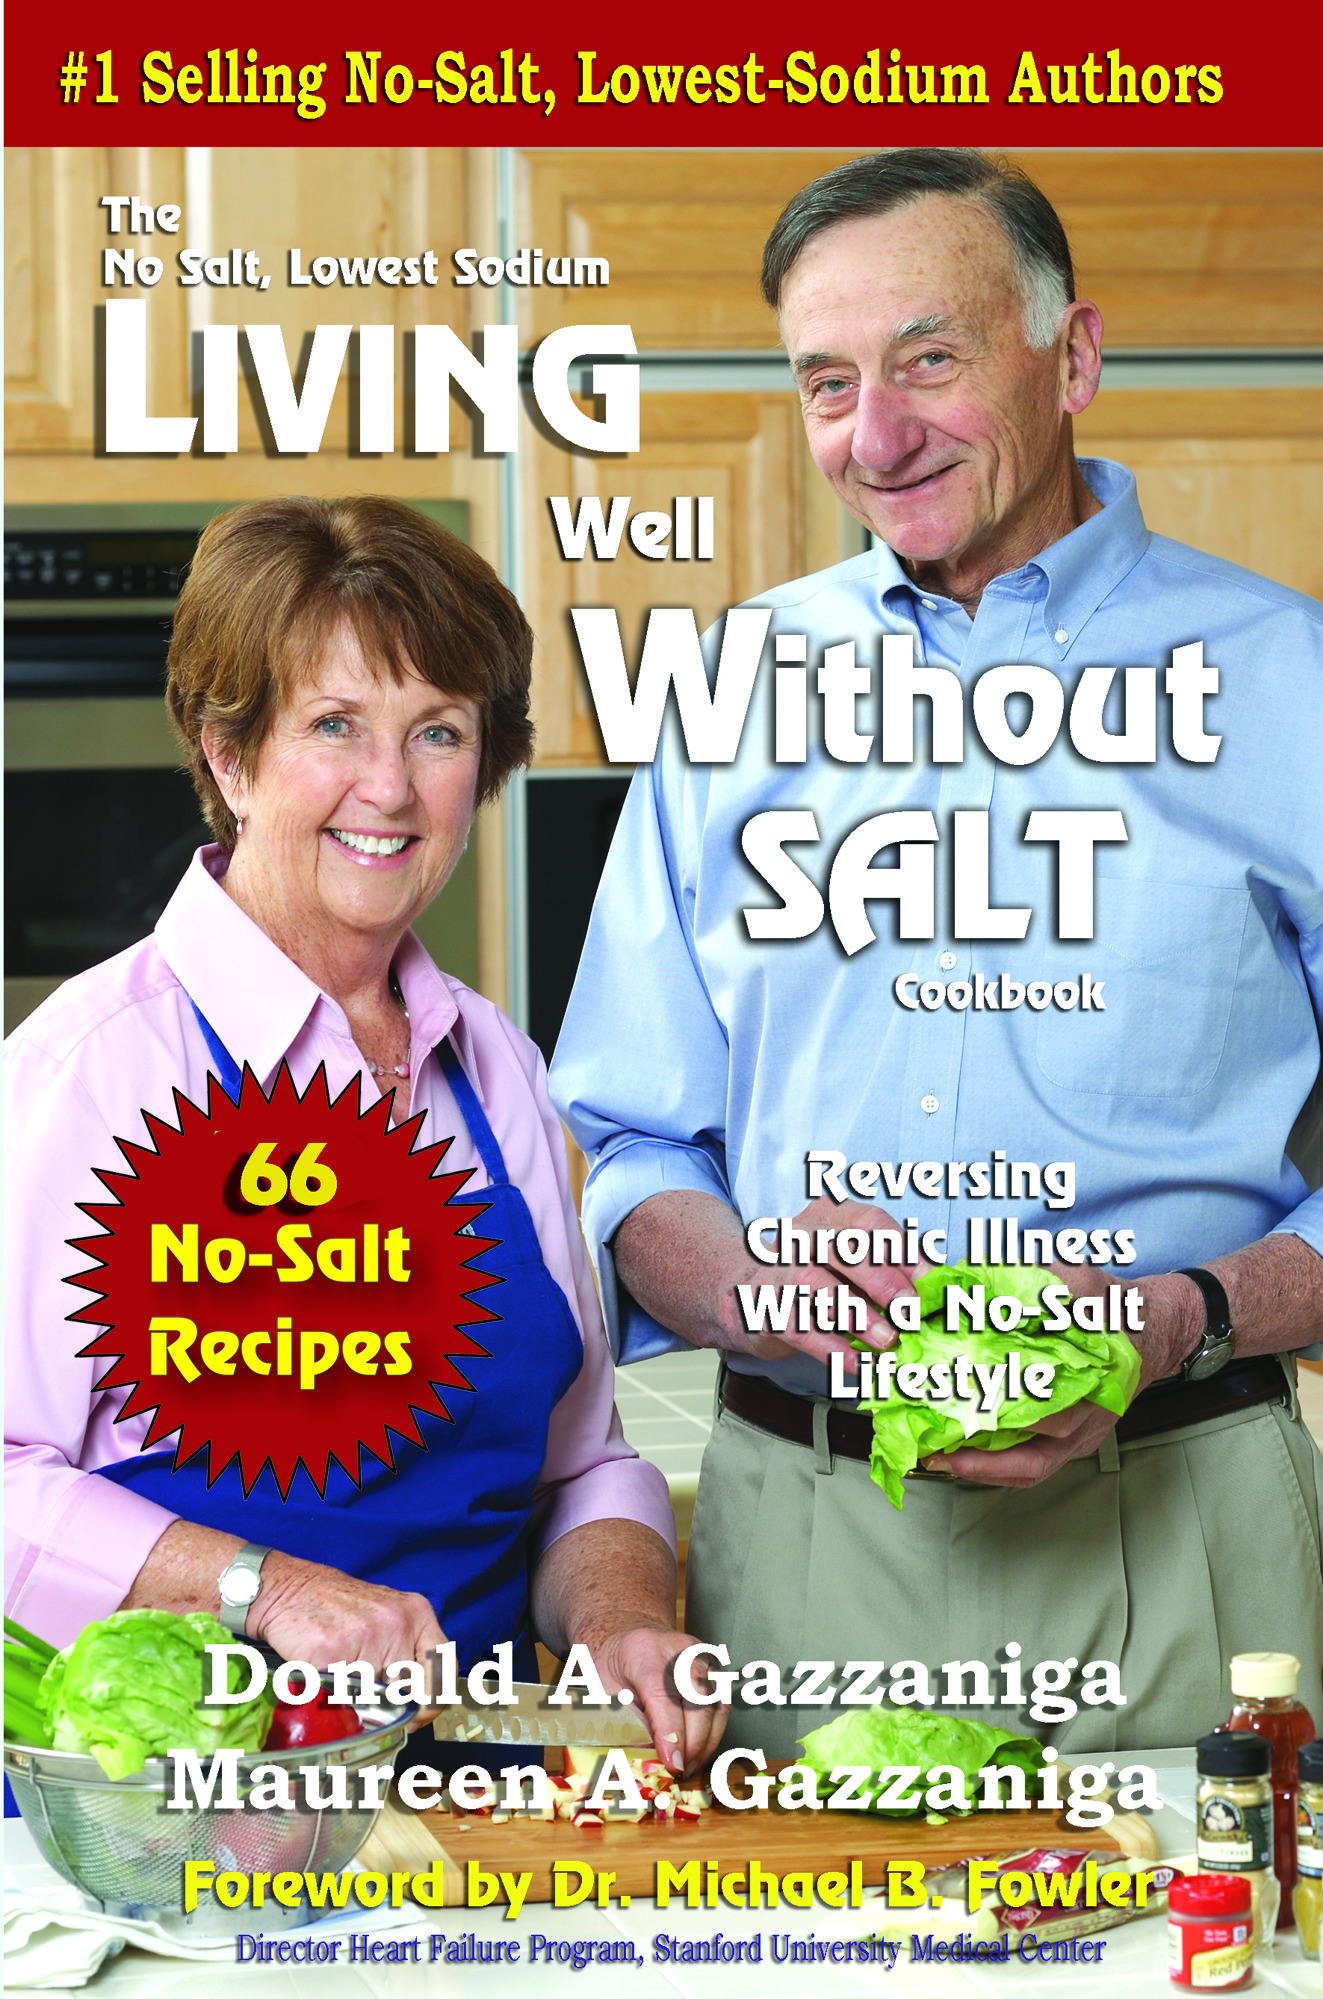 Living Well Without Salt 66 Recipe Addendum